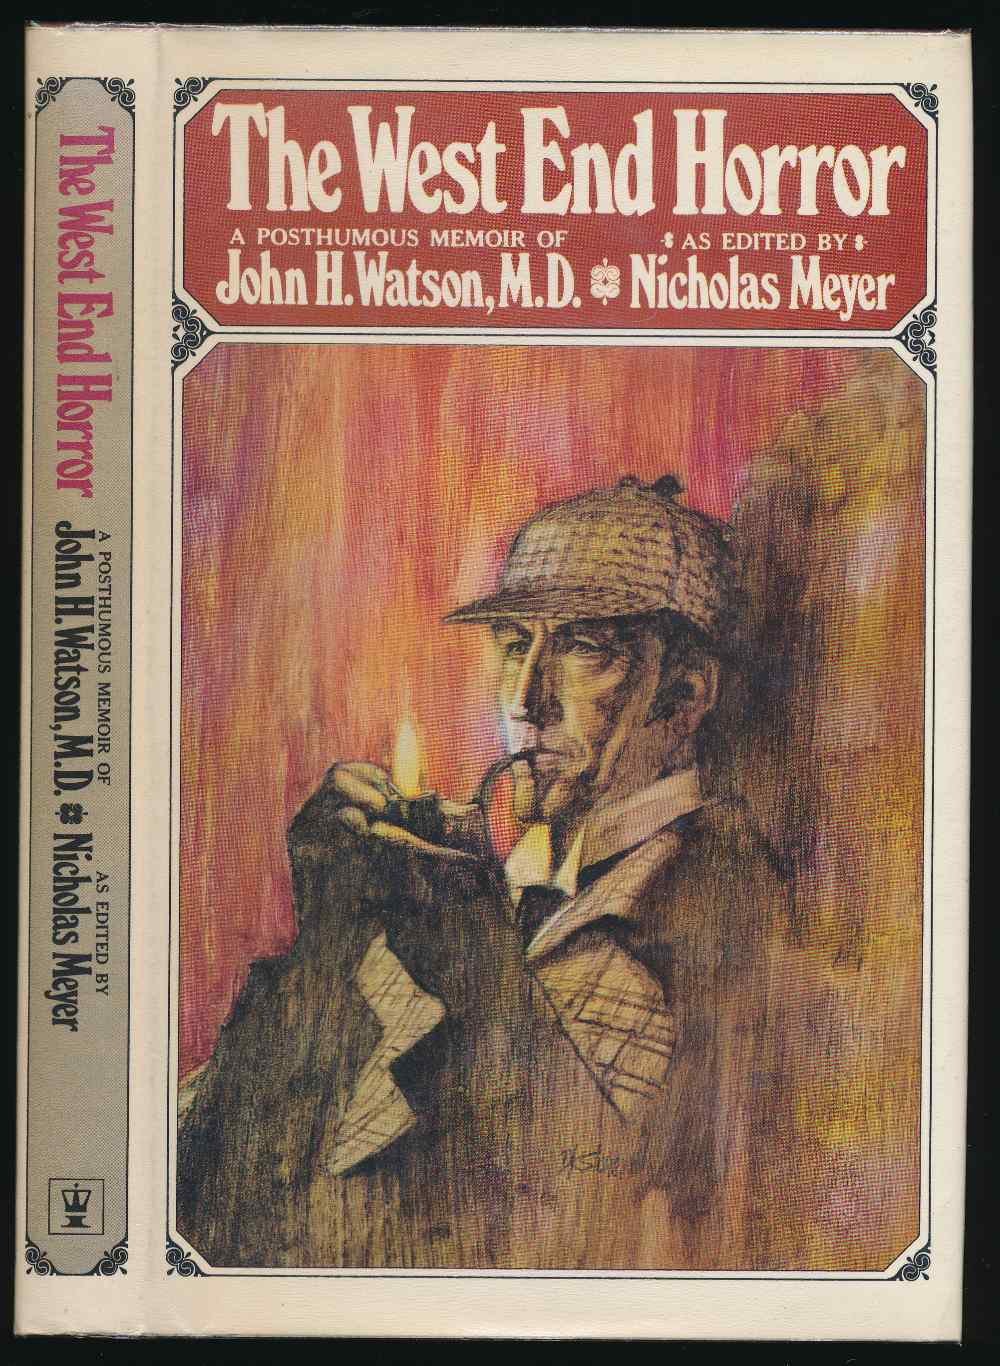 The West End horror : a posthumous memoir of John H. Watson, M.D.